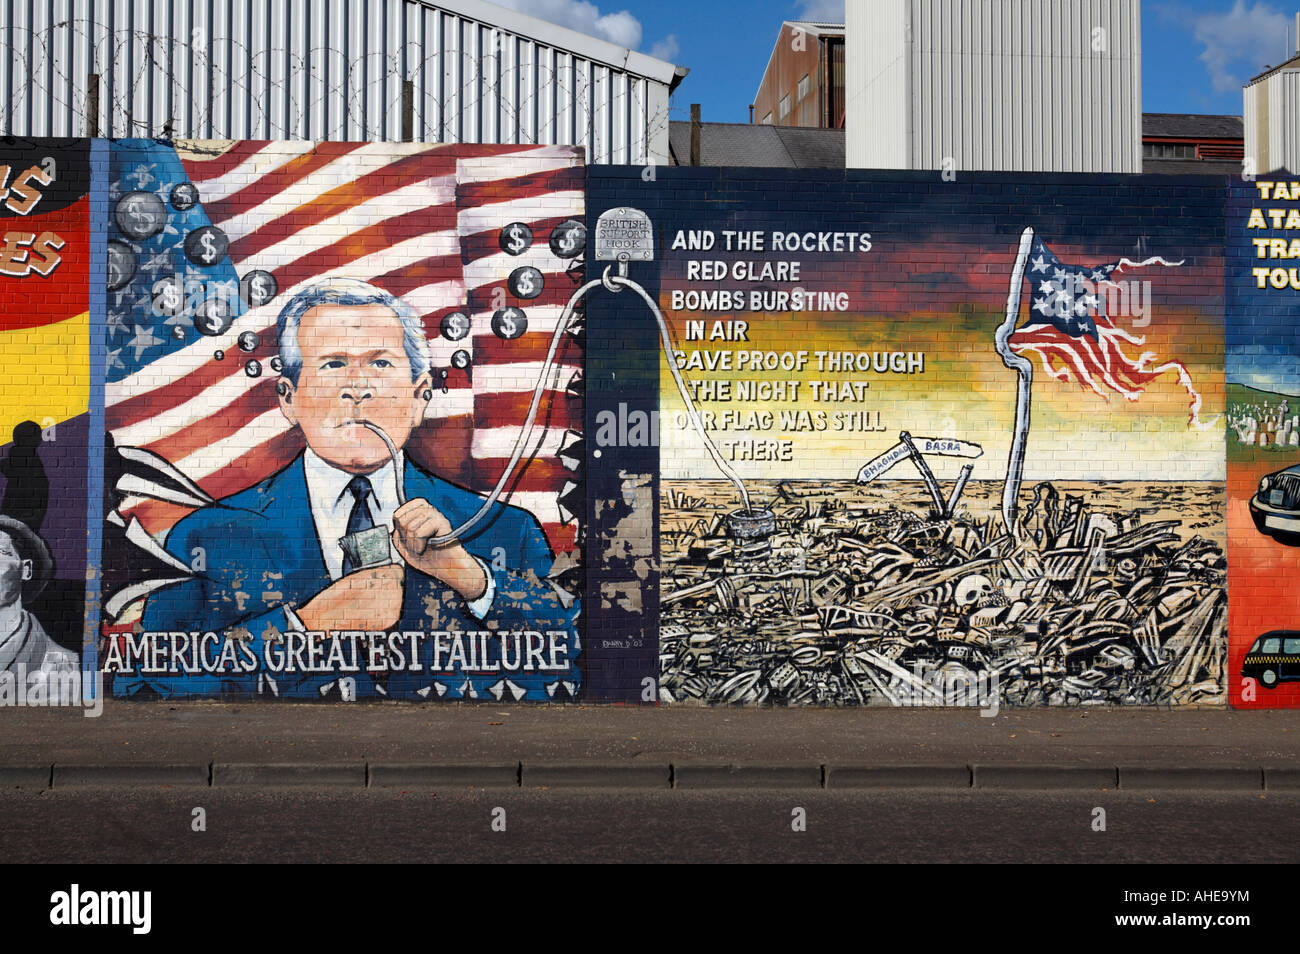 International wall murals in the republican falls road area of west belfast Northern Ireland . This mural is an - Stock Image